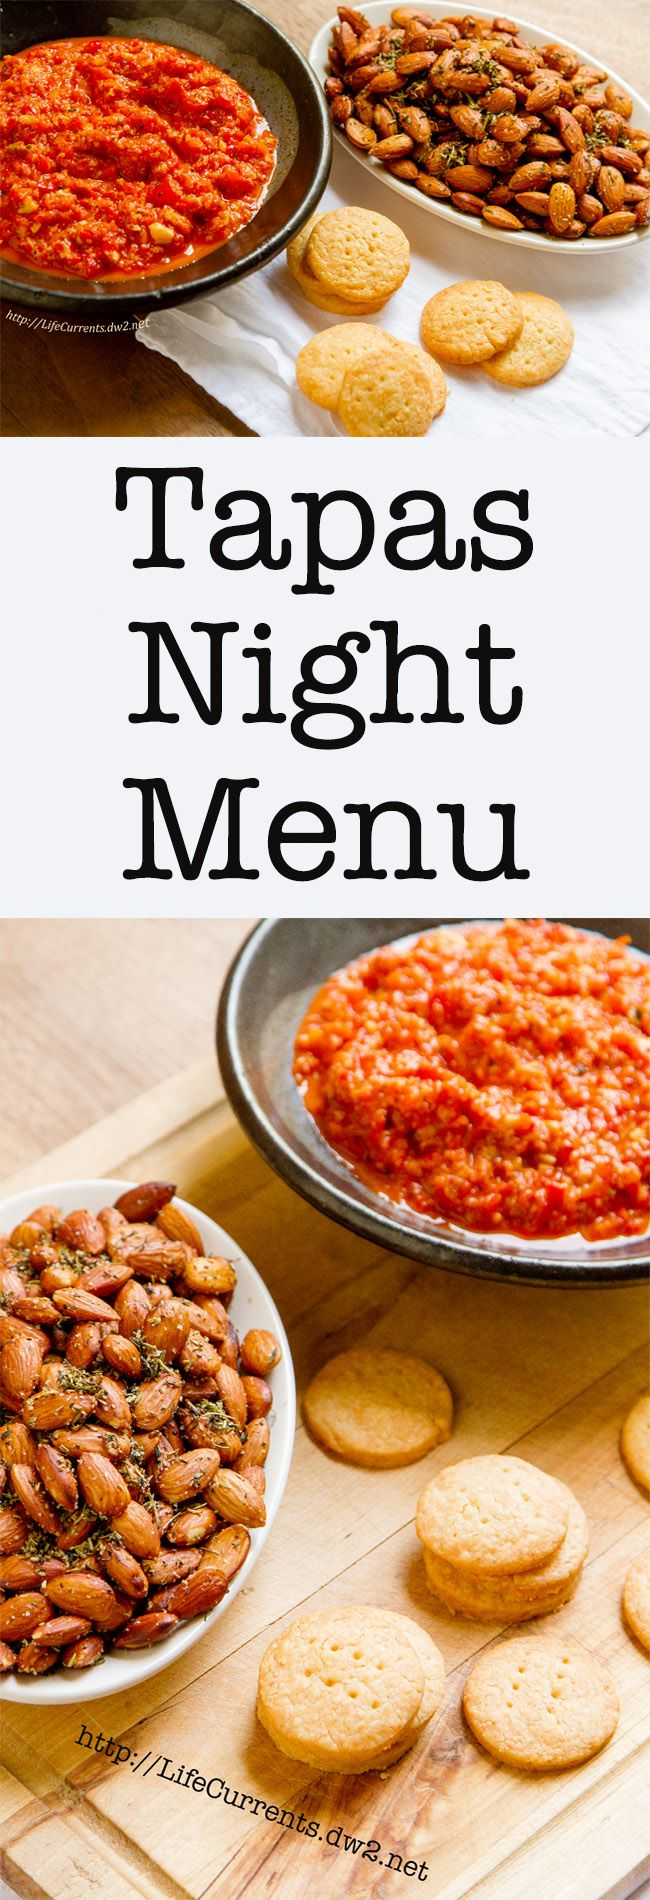 Delightful Tapas Dinner Party Ideas Part - 9: The 25+ Best Tapas Party Ideas On Pinterest | Antipasti Board, Tapas Recipes  And Tapas Buffet